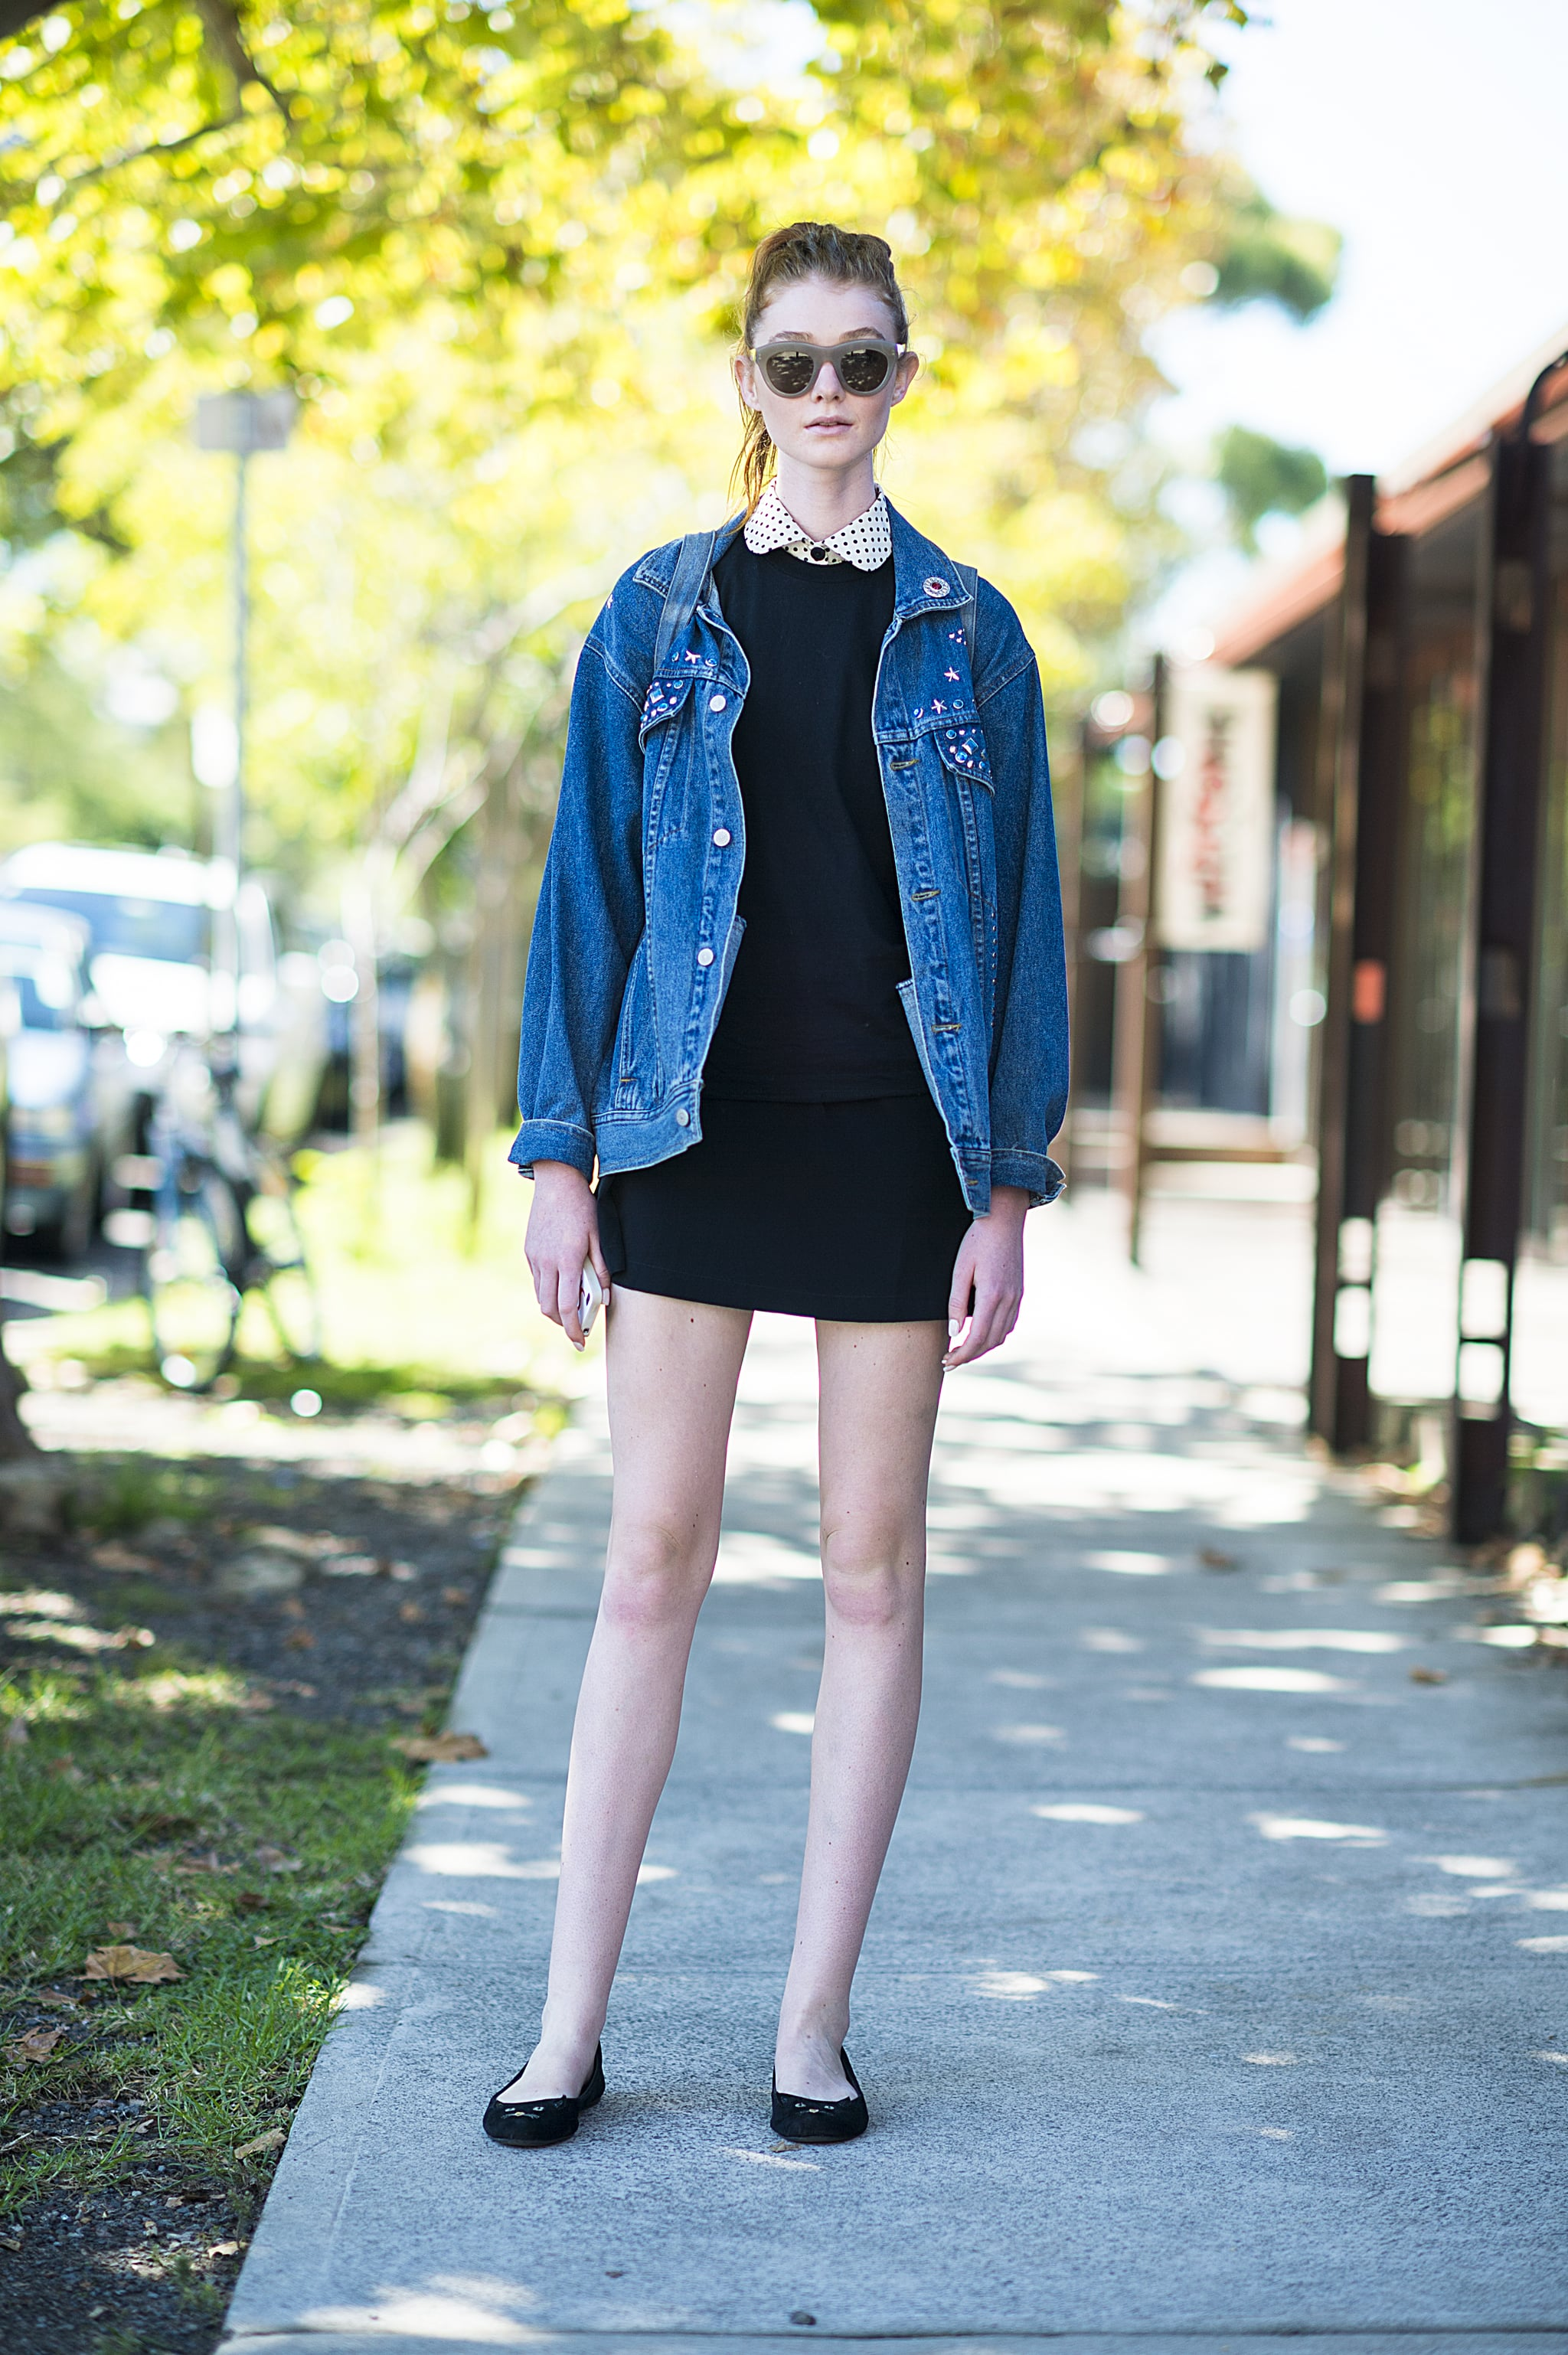 Warm up your sweet day dress with a staple jean jacket for a killer contrast. Source: Le 21ème | Adam Katz Sinding